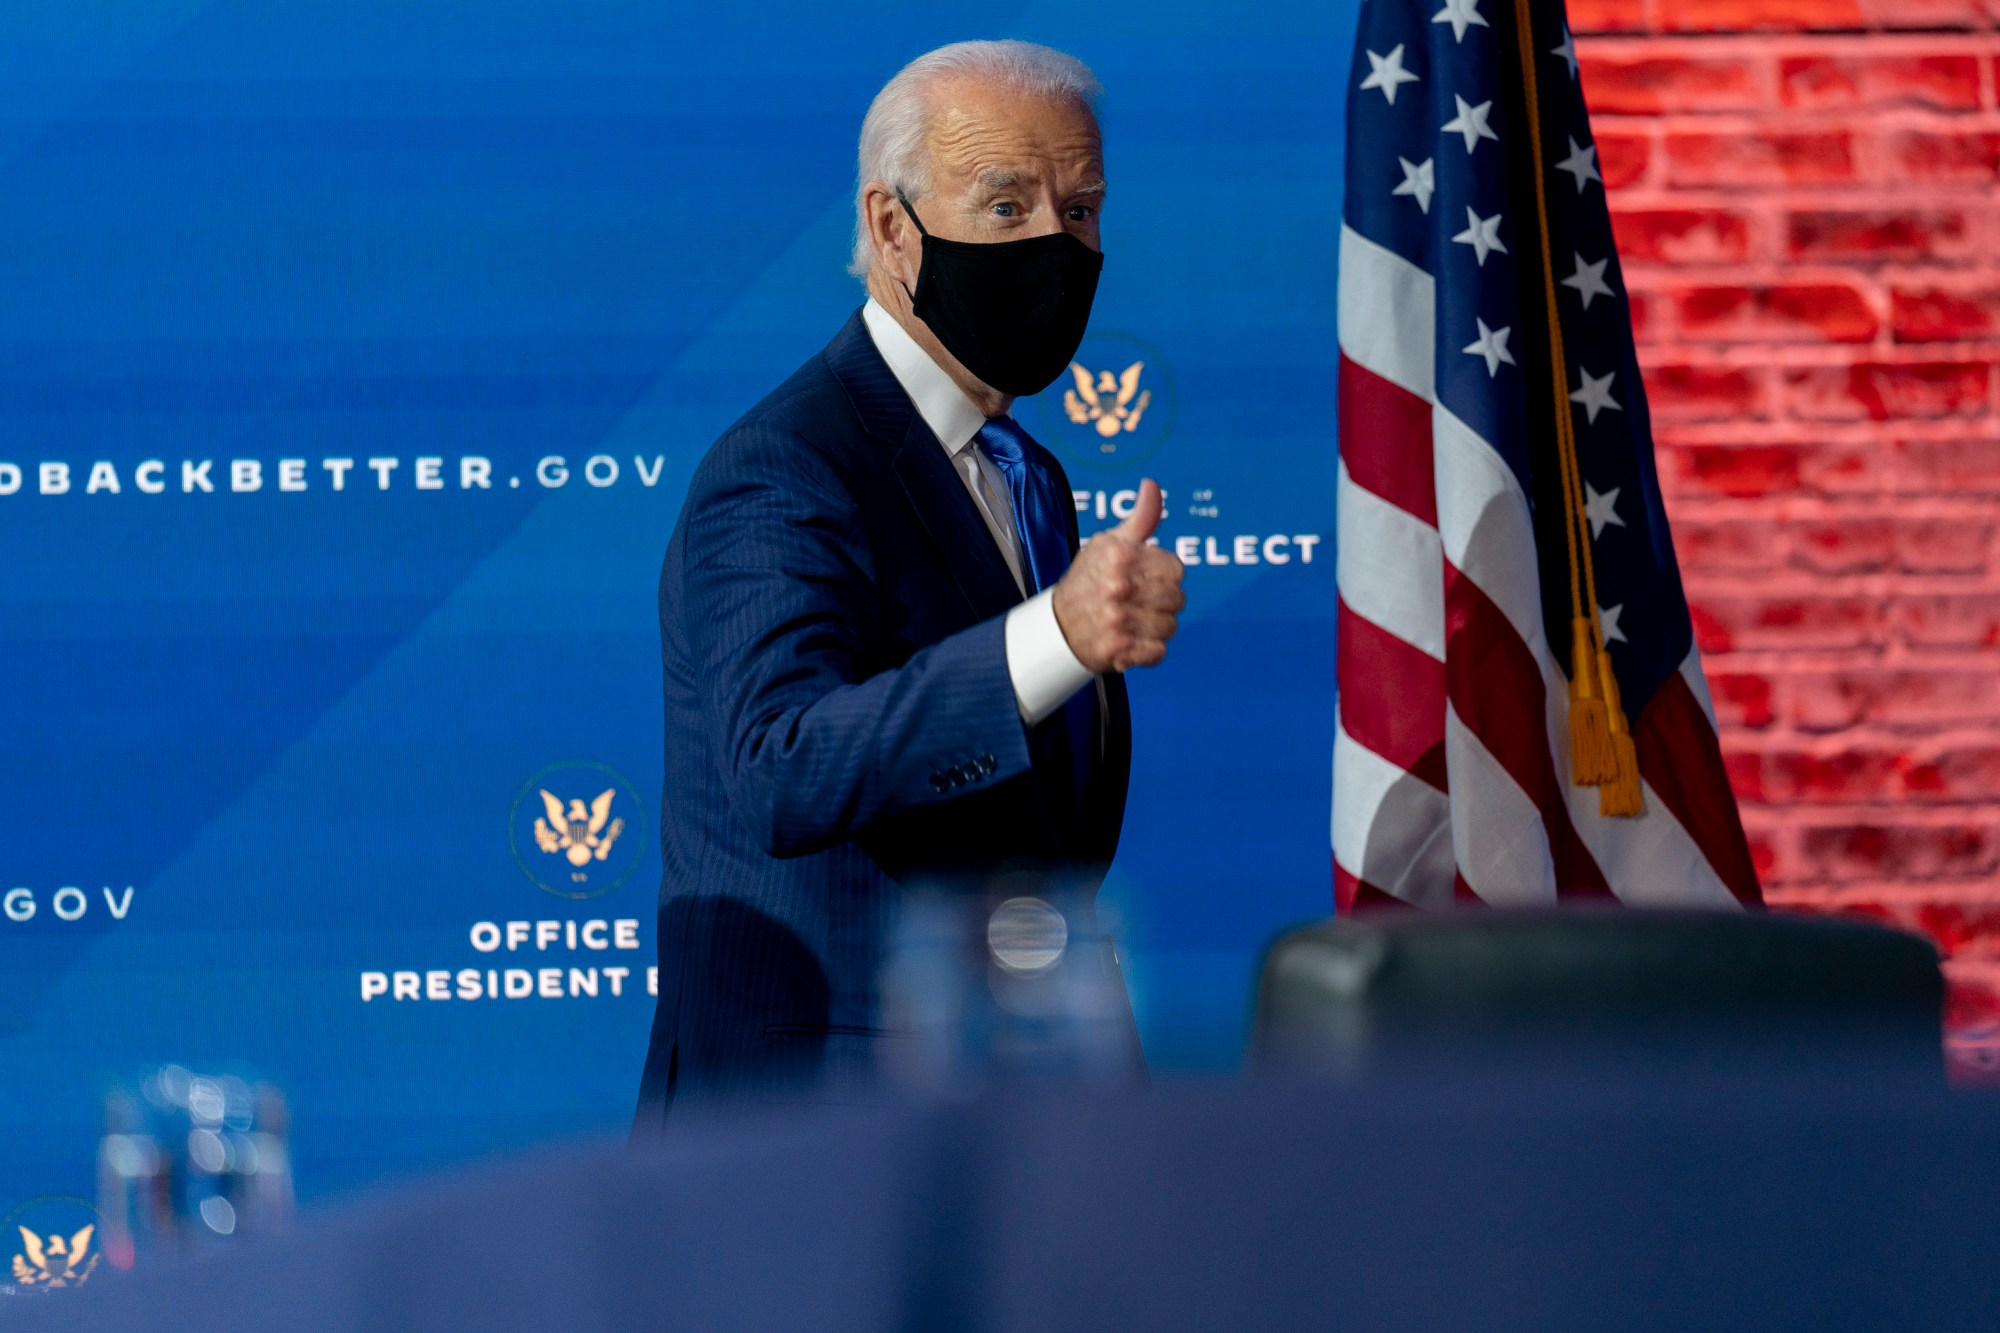 President-elect Joe Biden departs a news conference after introducing his nominees and appointees to economic policy posts at The Queen theater on Dec. 1, 2020, in Wilmington, Del. (Andrew Harnik/Associated Press)